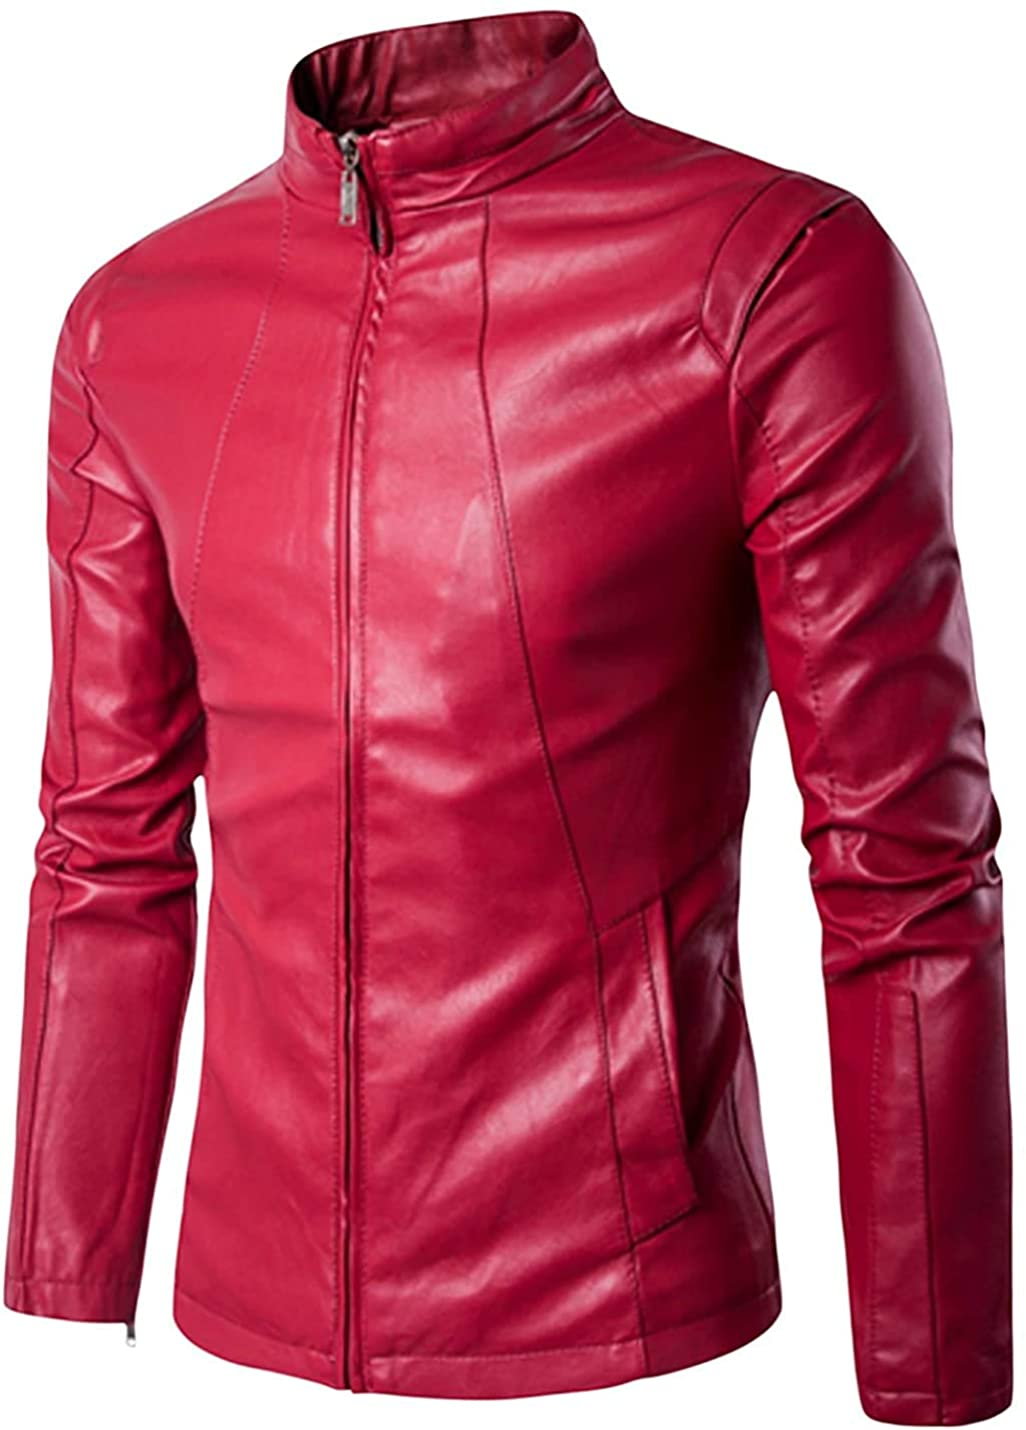 Mens Slim Fit Genuine Sheepskin Leather Jacket New Style In Red Vine